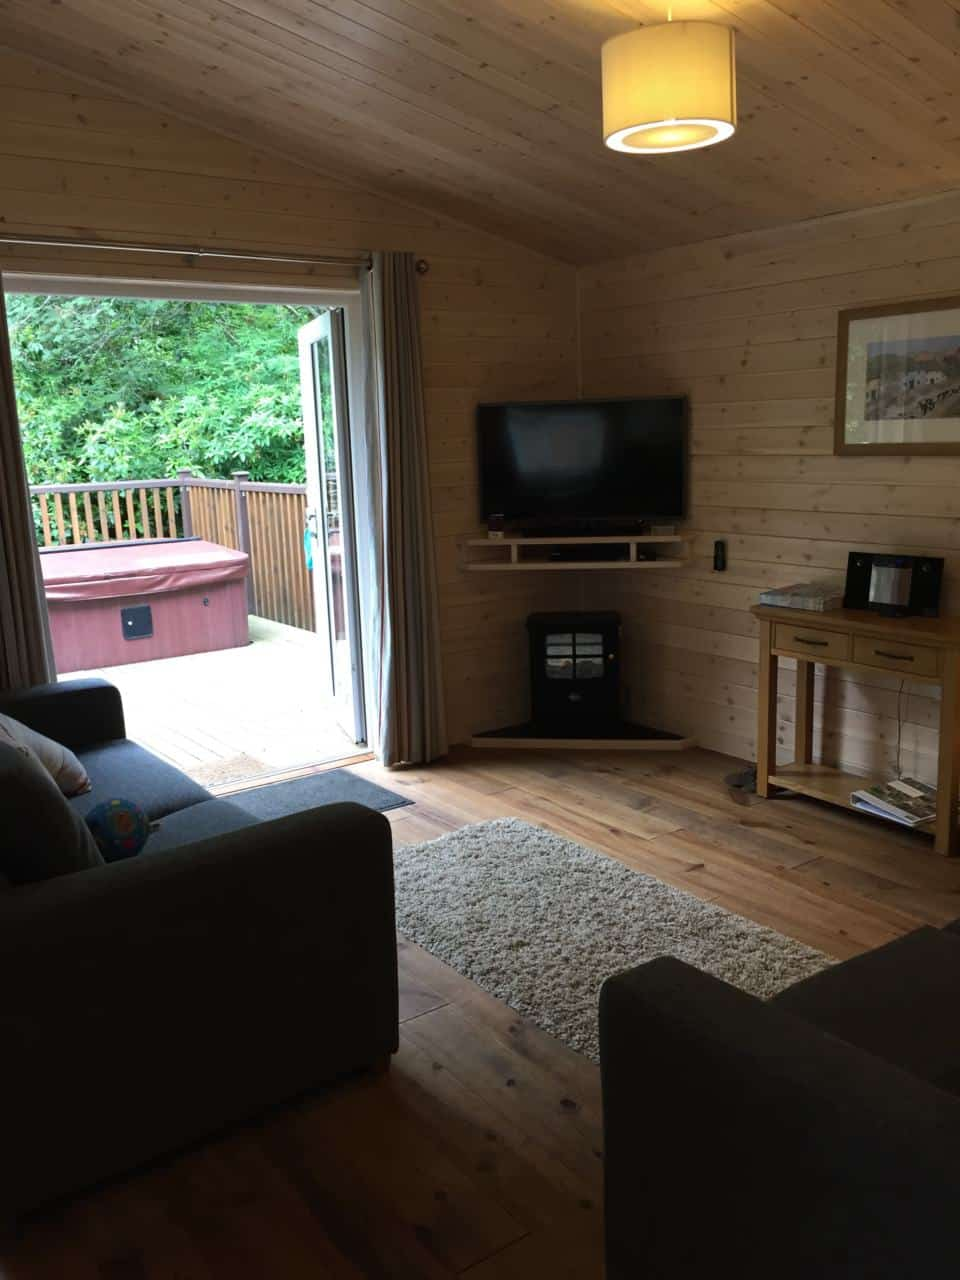 review of our luxury lodge stay at darwin forest country park